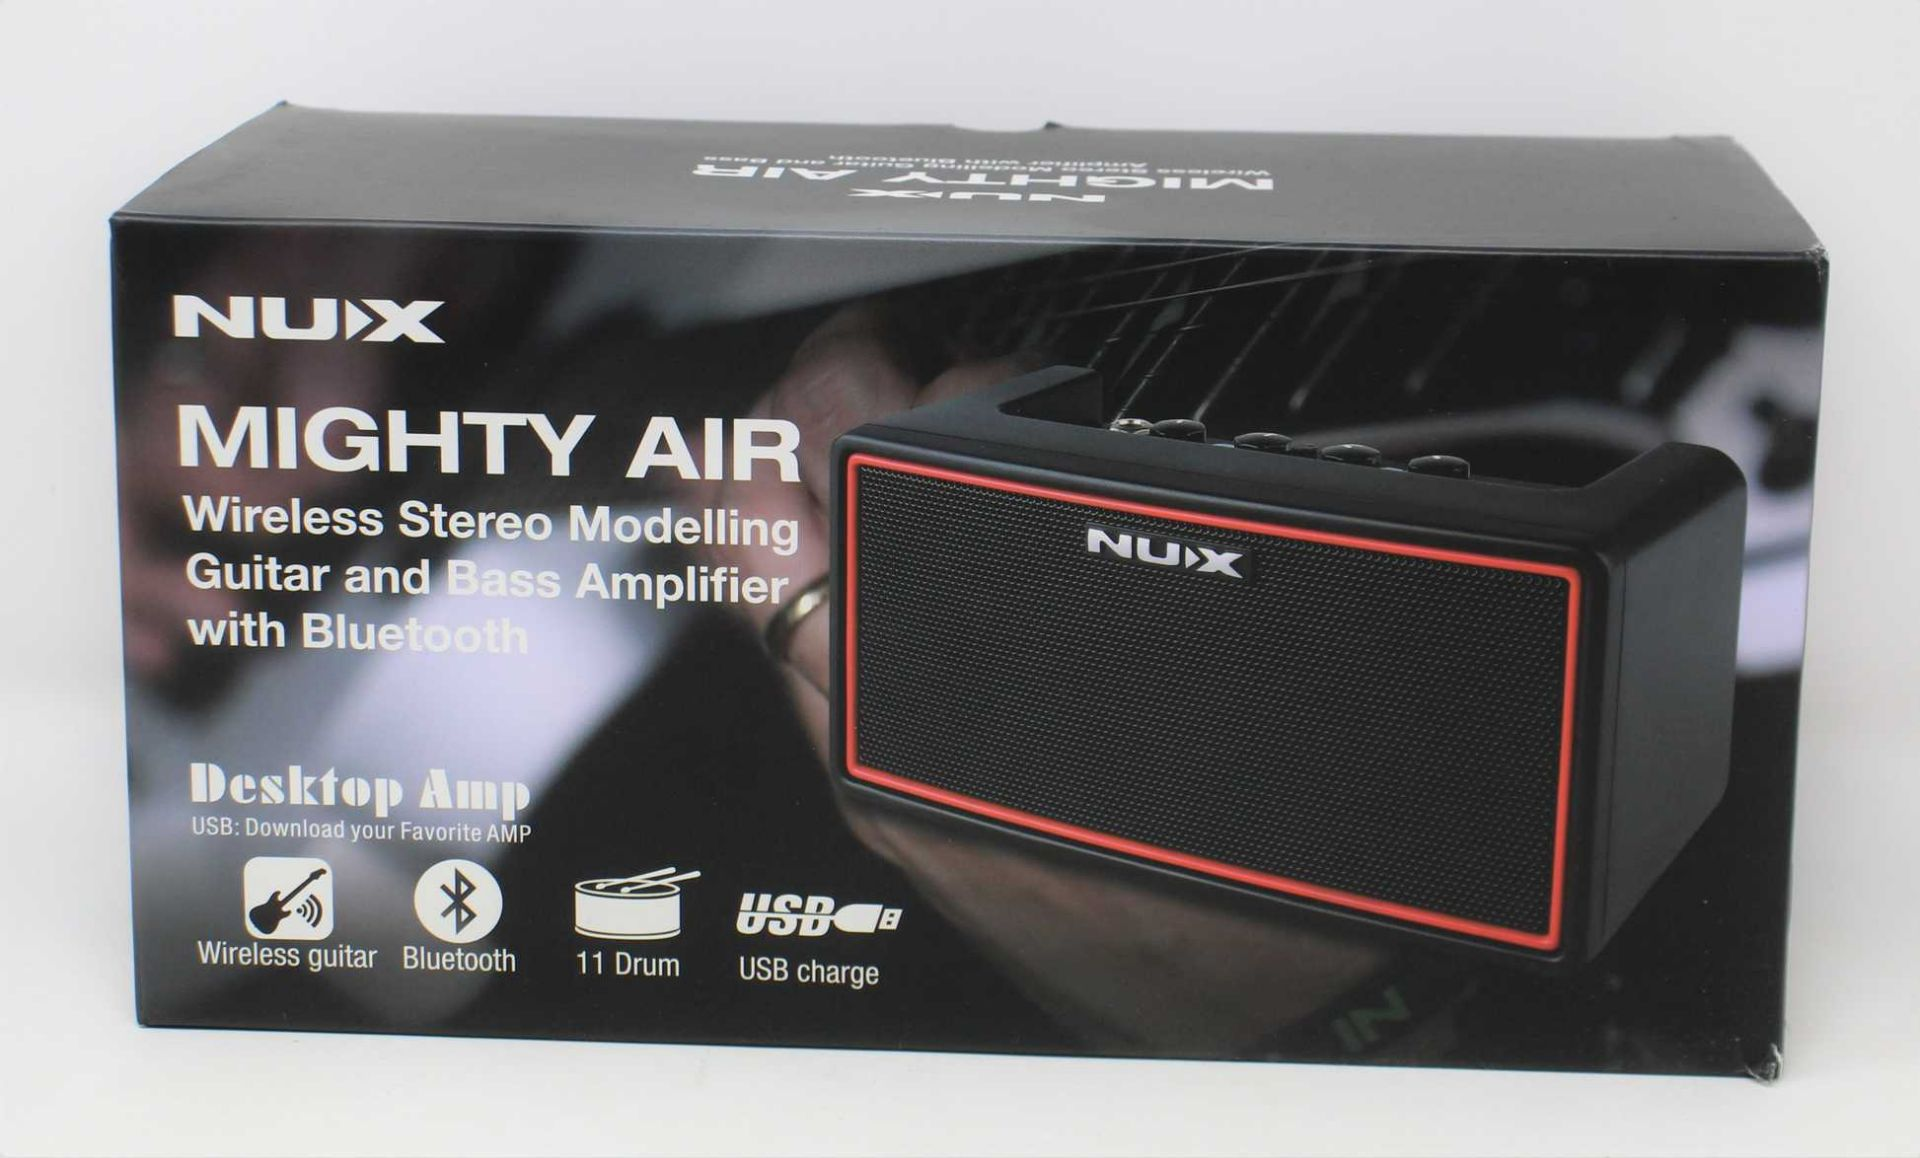 A boxed as new NuX Mighty Air Wireless Stereo Modelling Guitar & Bass Amplifier with Bluetooth.